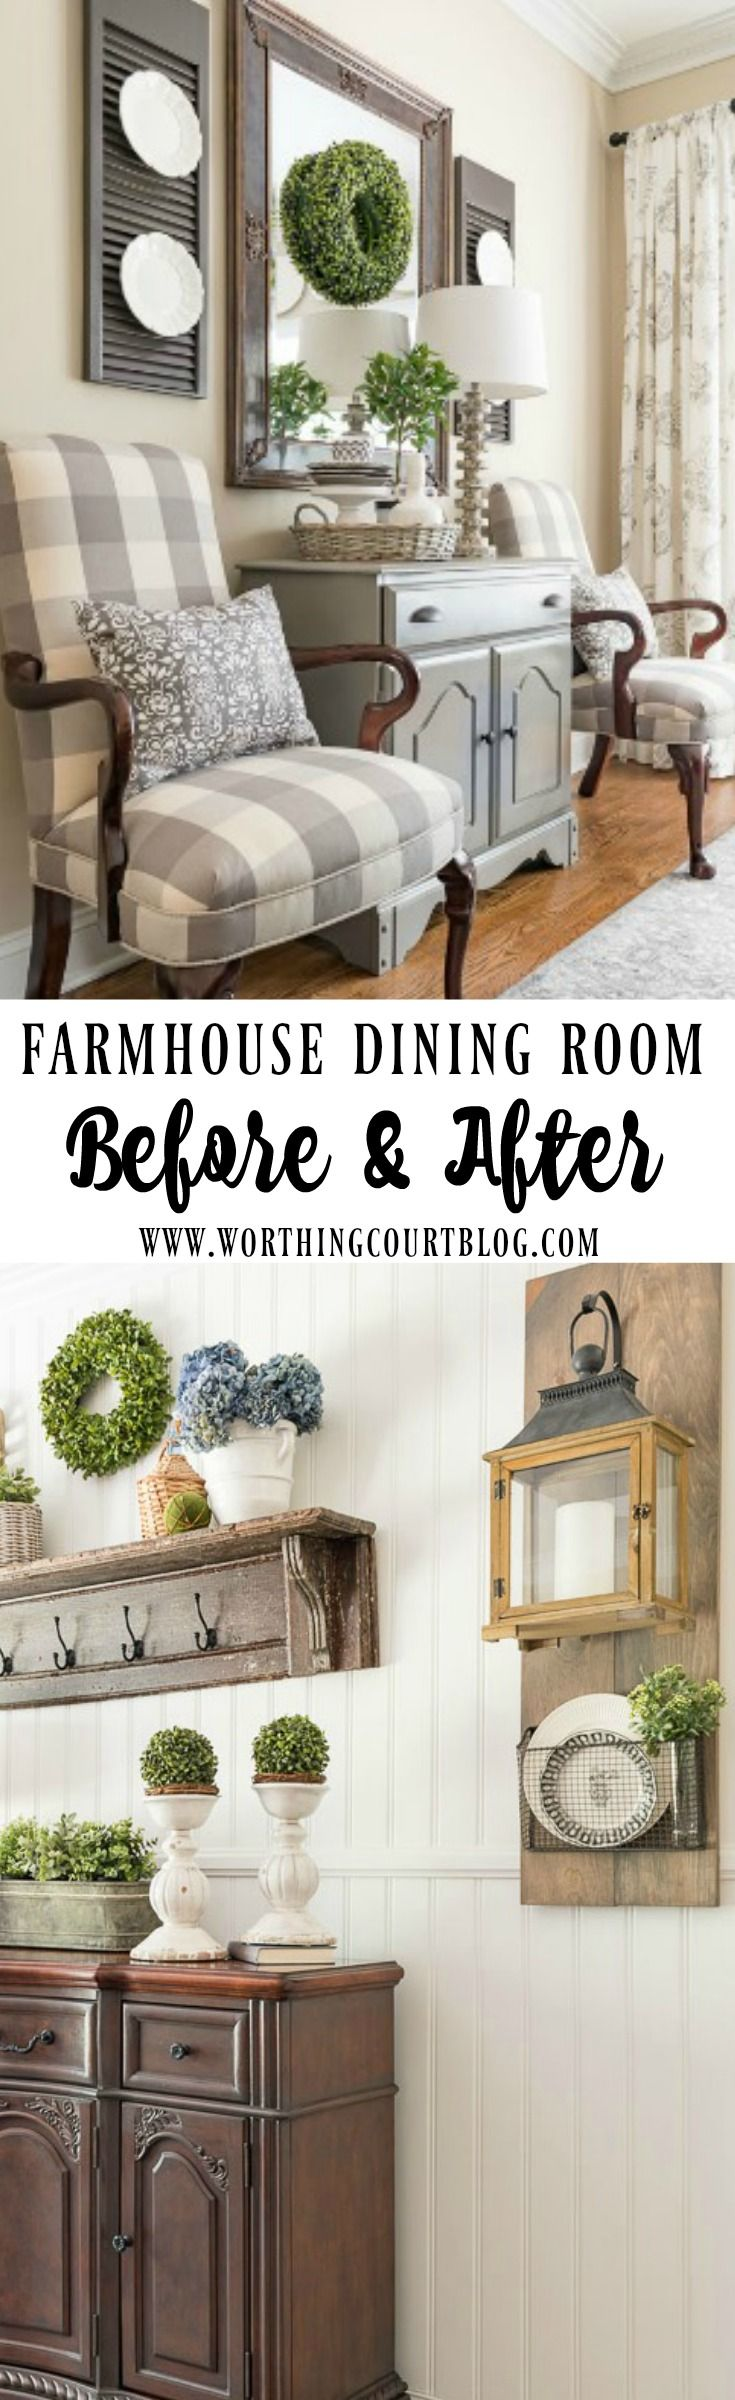 Designer Wall Decor best 25+ dining room decorating ideas only on pinterest | dining